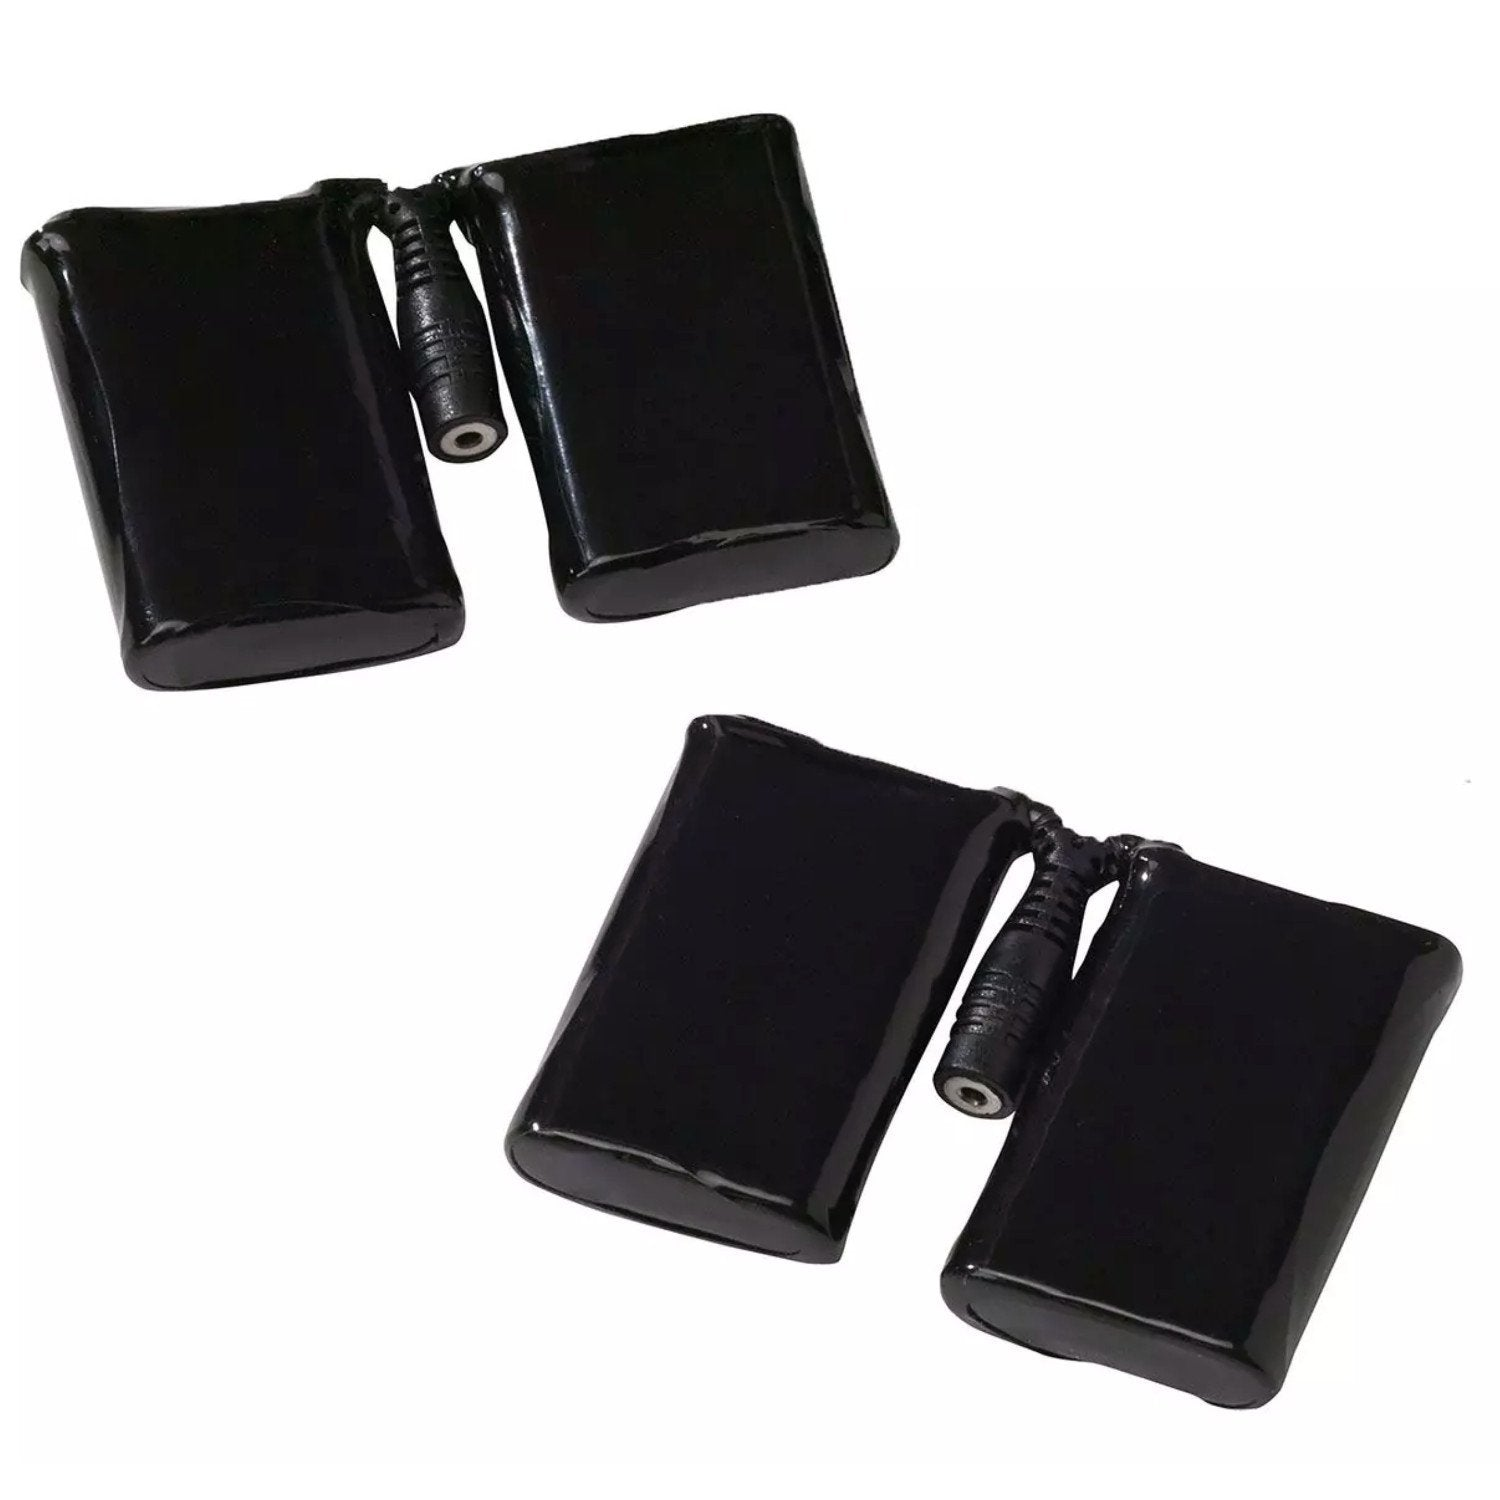 Pair of Outdoor Research Battery 2 Packs in black colour